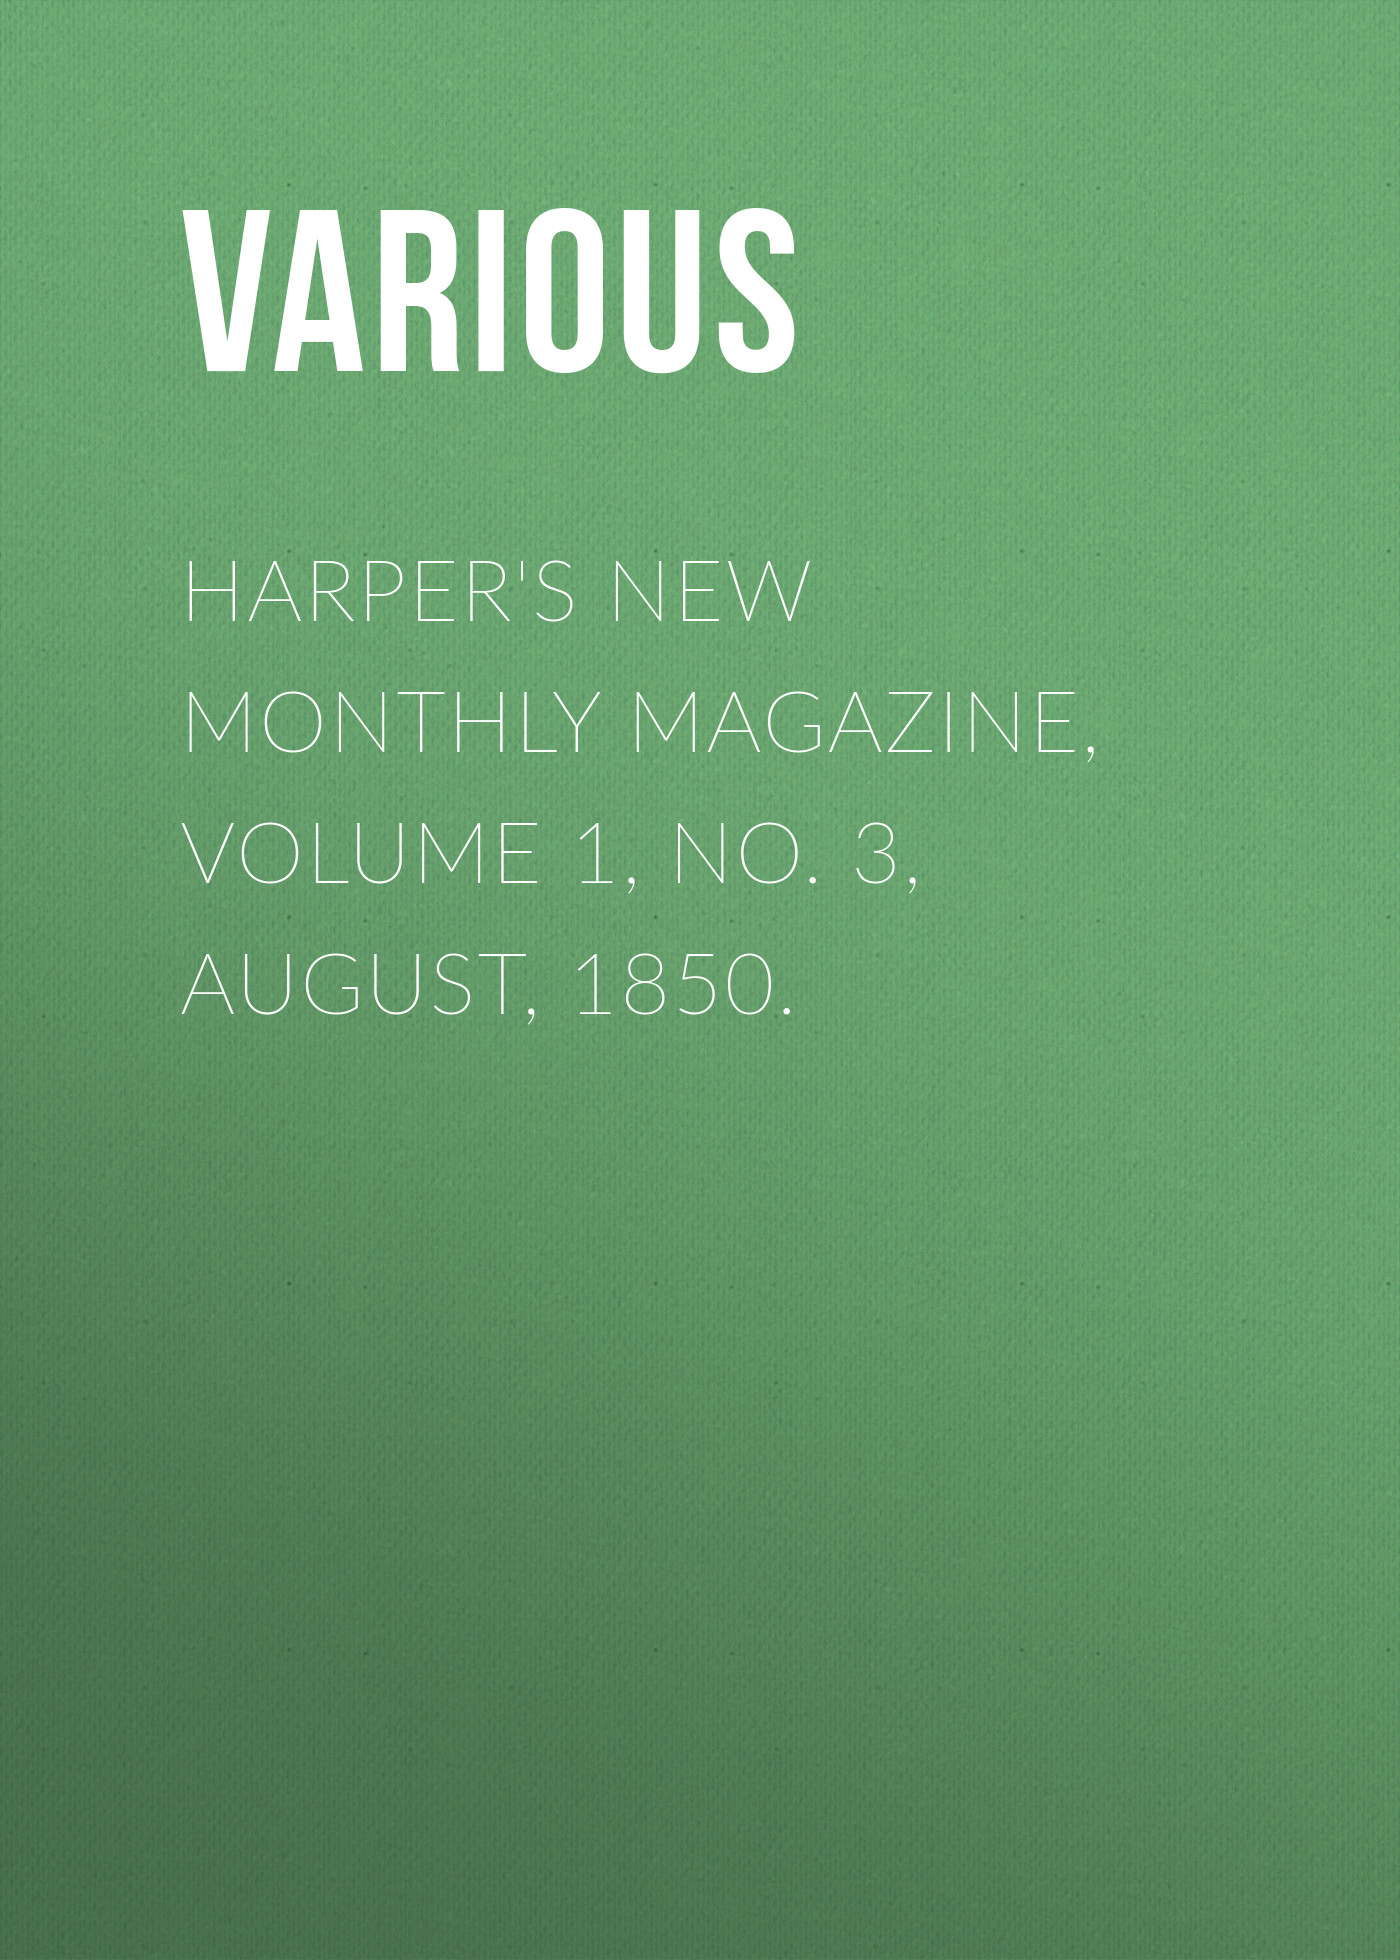 цена Various Harper's New Monthly Magazine, Volume 1, No. 3, August, 1850.